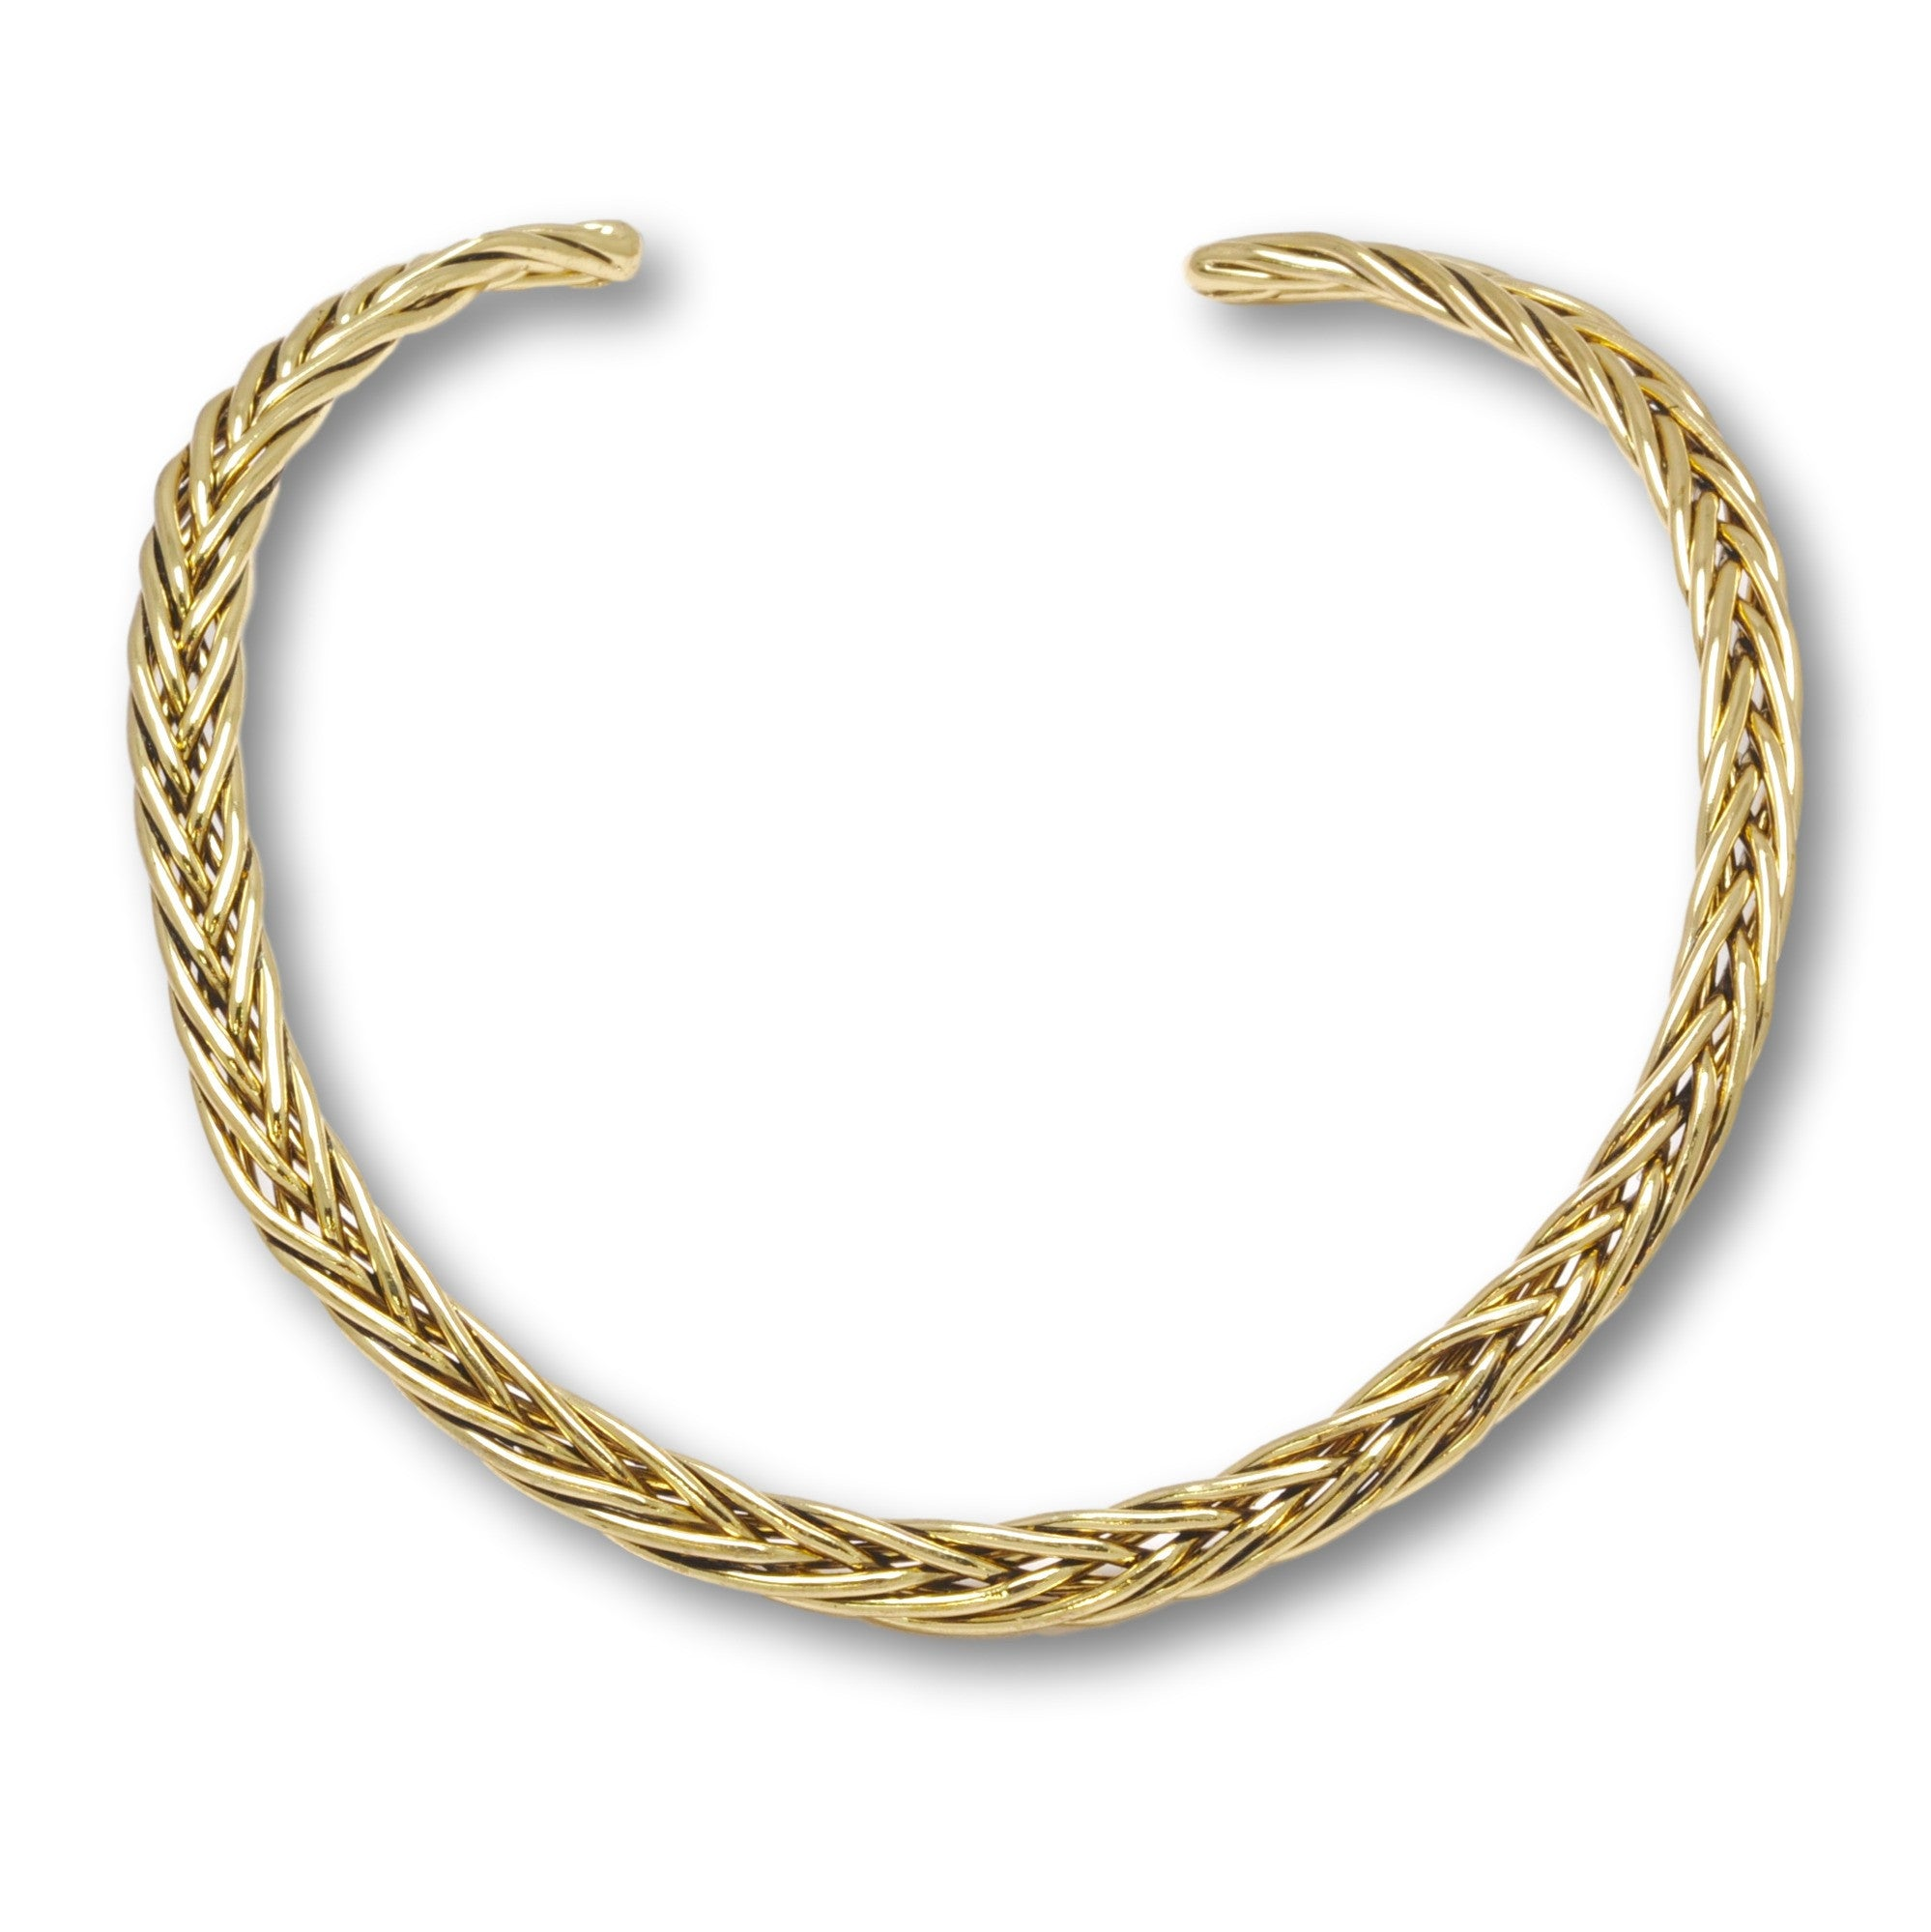 Gold Braided Choker (Lead Free)